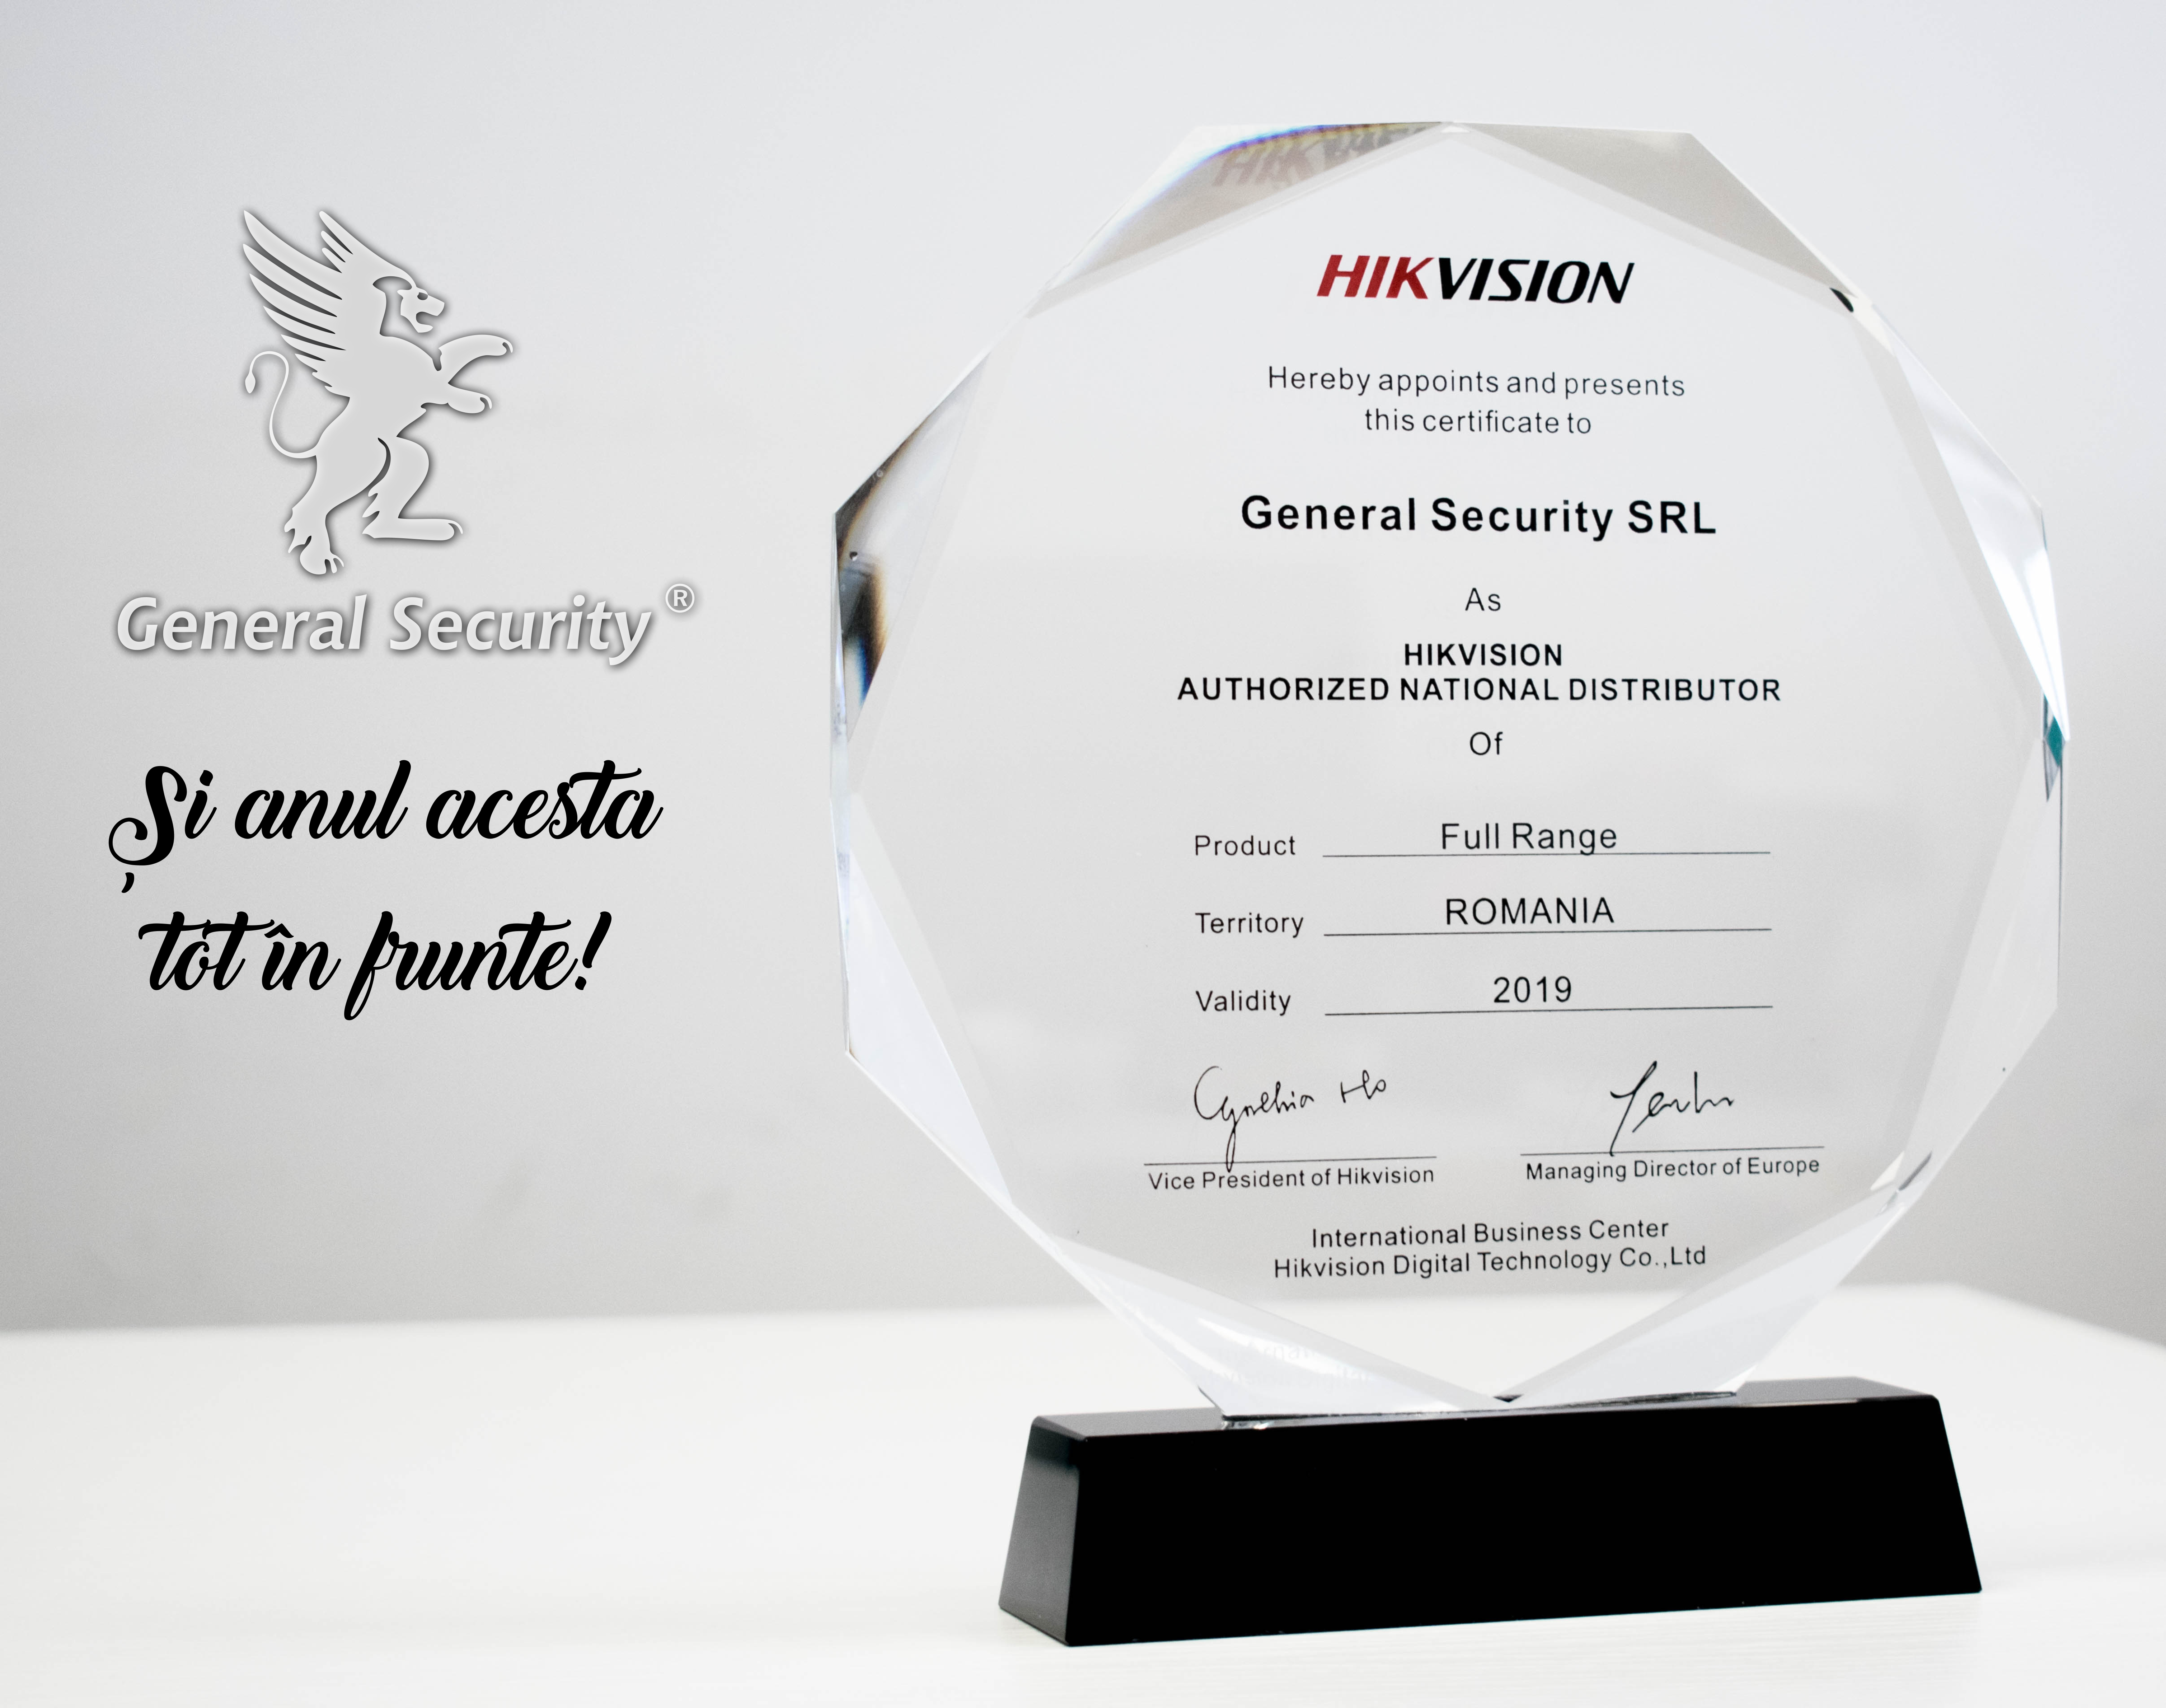 General Security - HIKVISION Gold Distributor